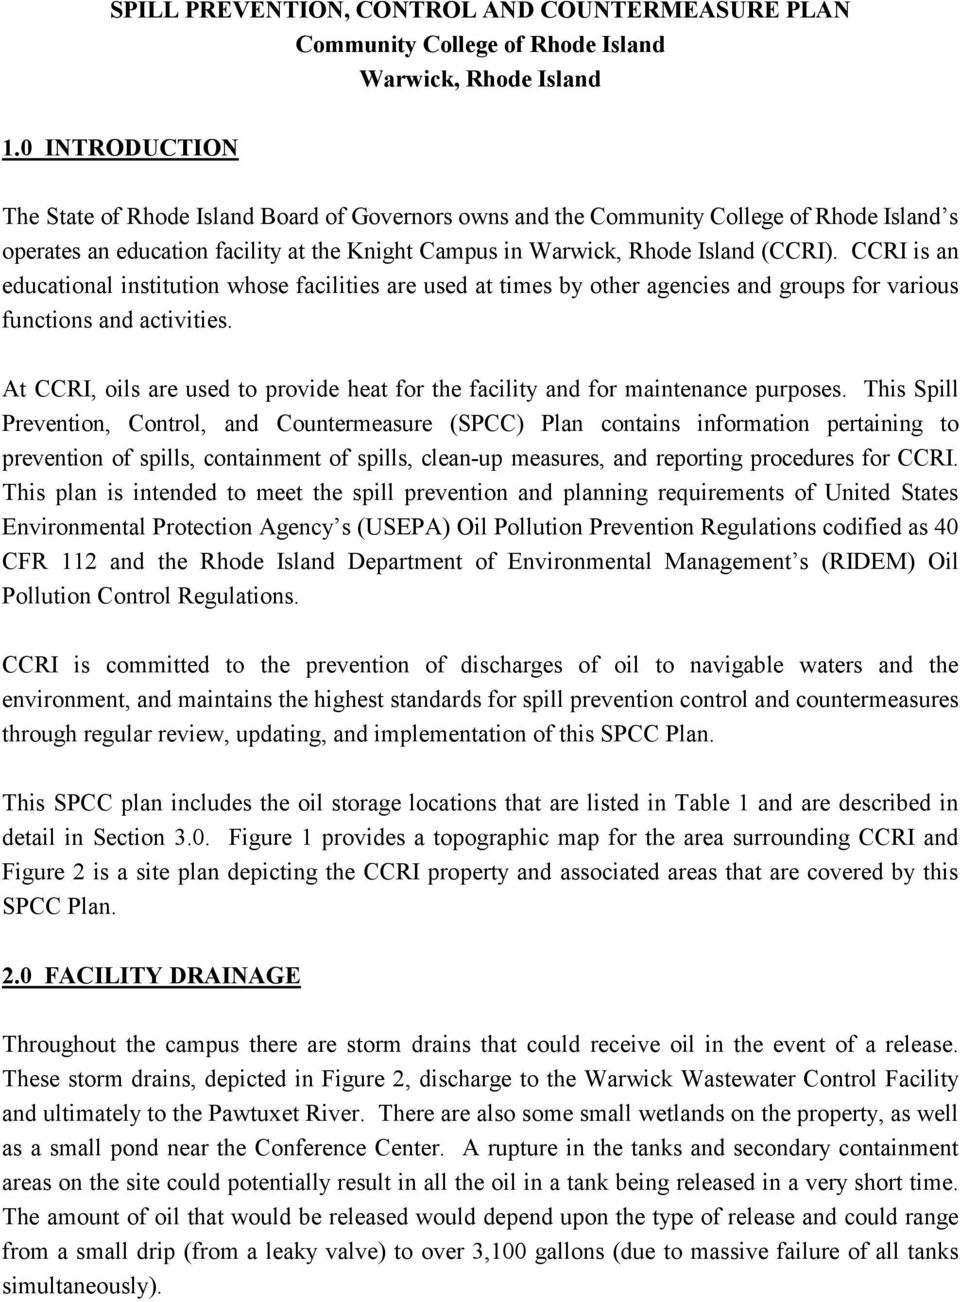 Spill Prevention Control And Countermeasure Plan Community College